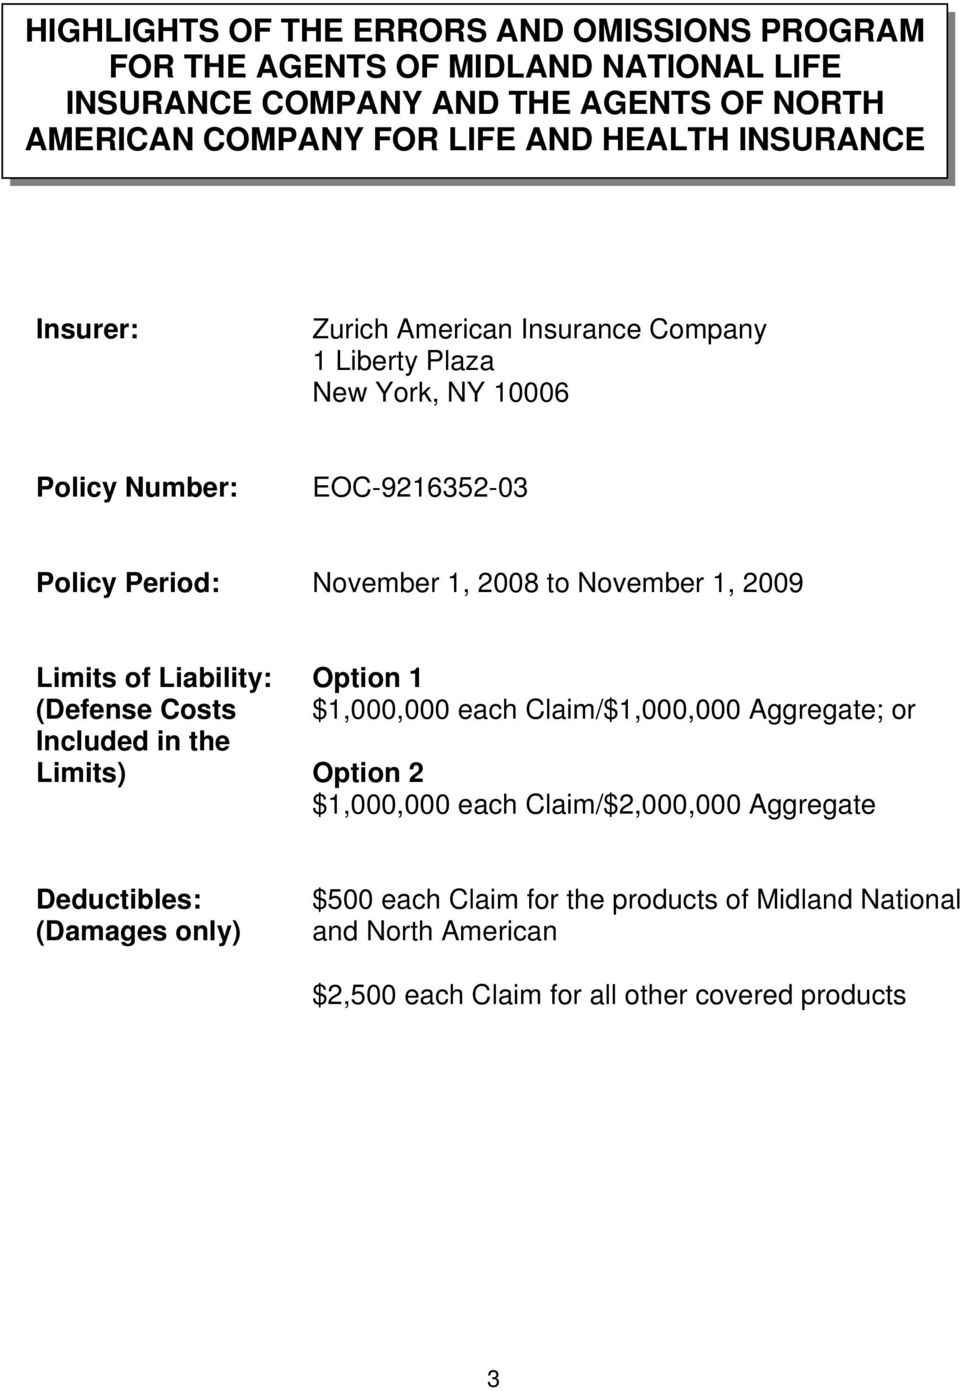 November 1, 2009 Limits of Liability: (Defense Costs Included in the Limits) Option 1 $1,000,000 each Claim/$1,000,000 Aggregate; or Option 2 $1,000,000 each